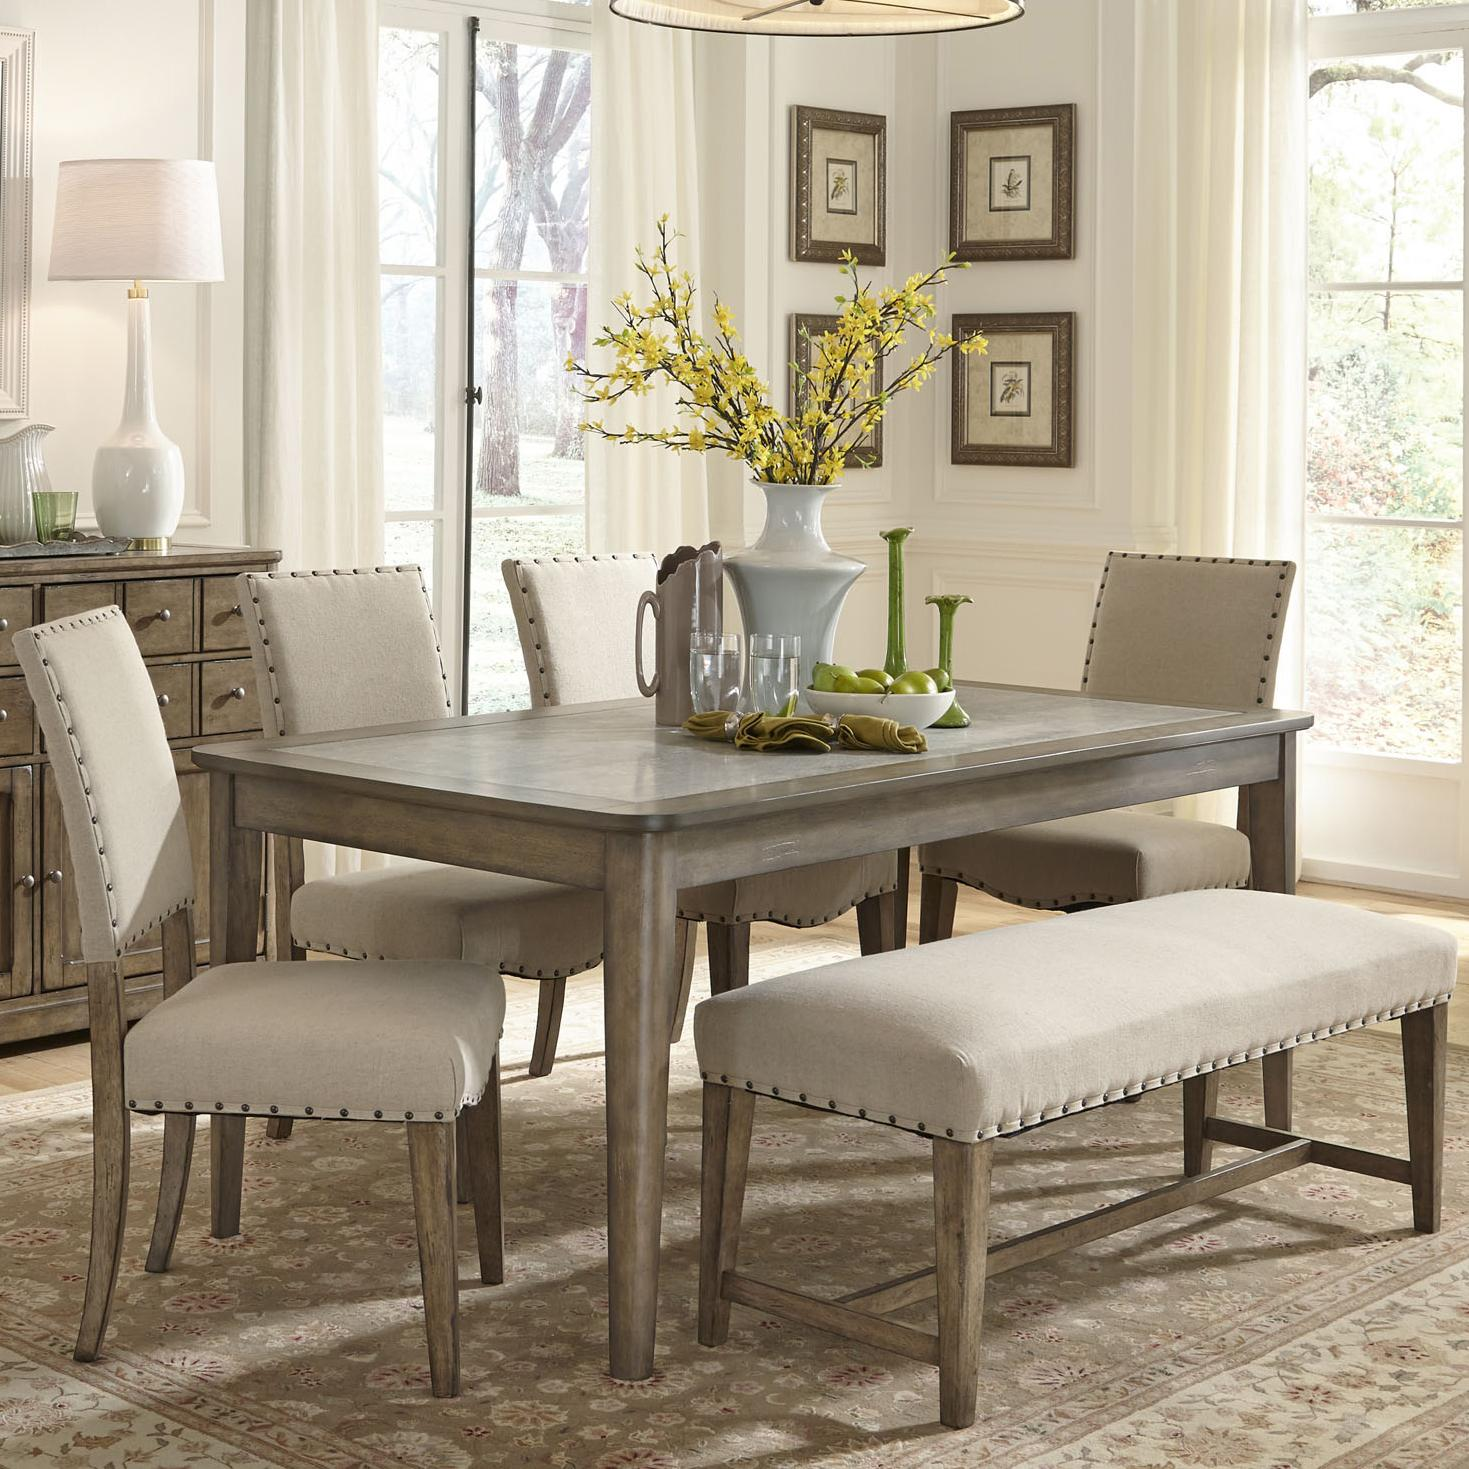 6 Piece Dining Table And Chairs Set